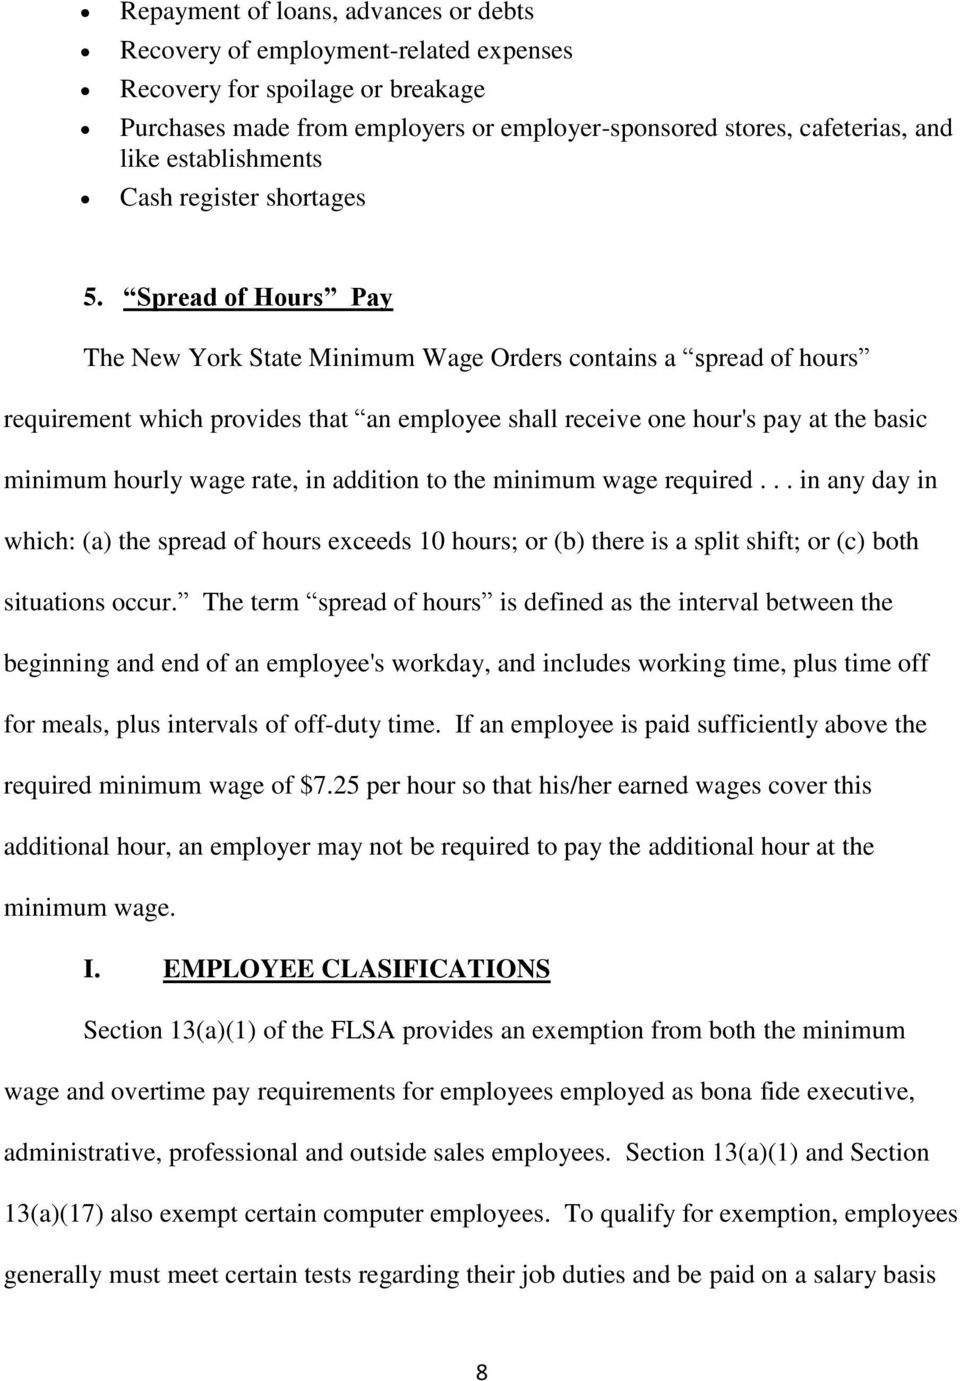 Spread of Hours Pay The New York State Minimum Wage Orders contains a spread of hours requirement which provides that an employee shall receive one hour's pay at the basic minimum hourly wage rate,